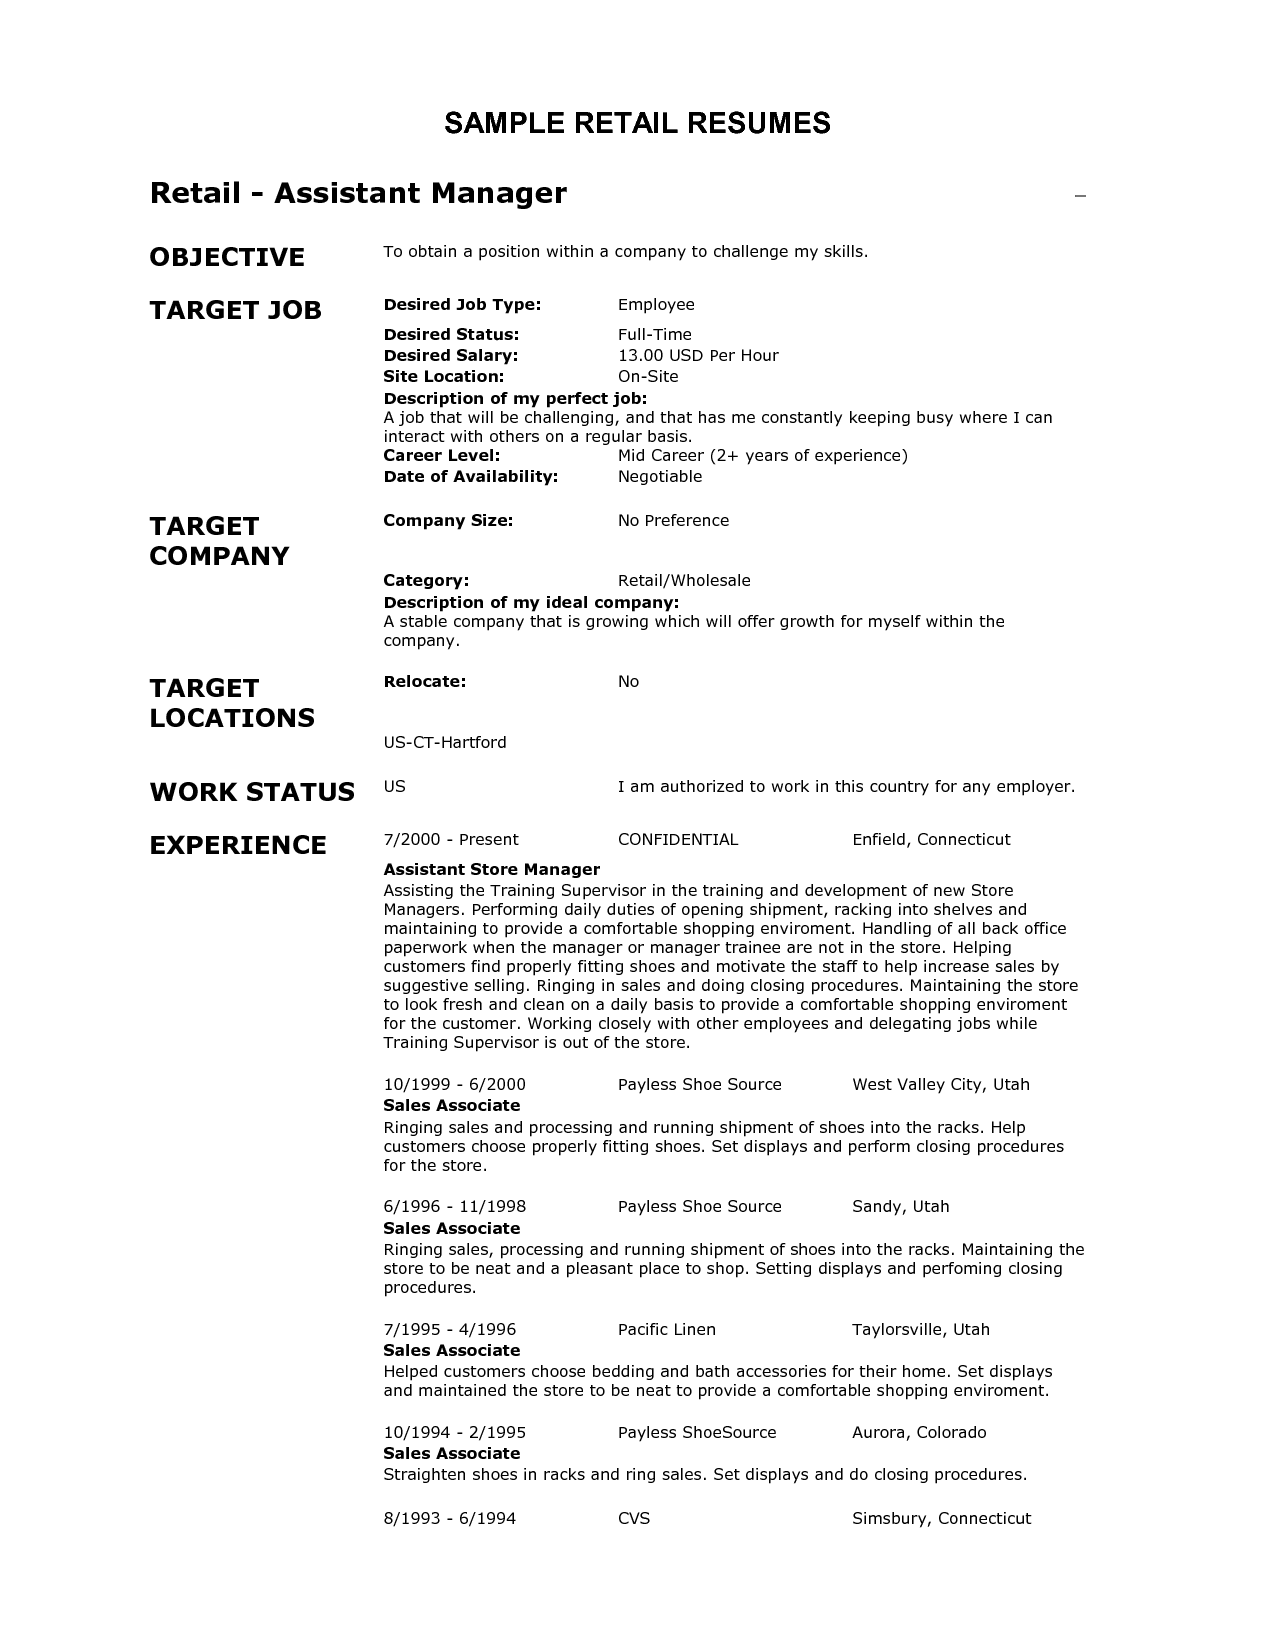 retail job resume objective Oylekalakaarico